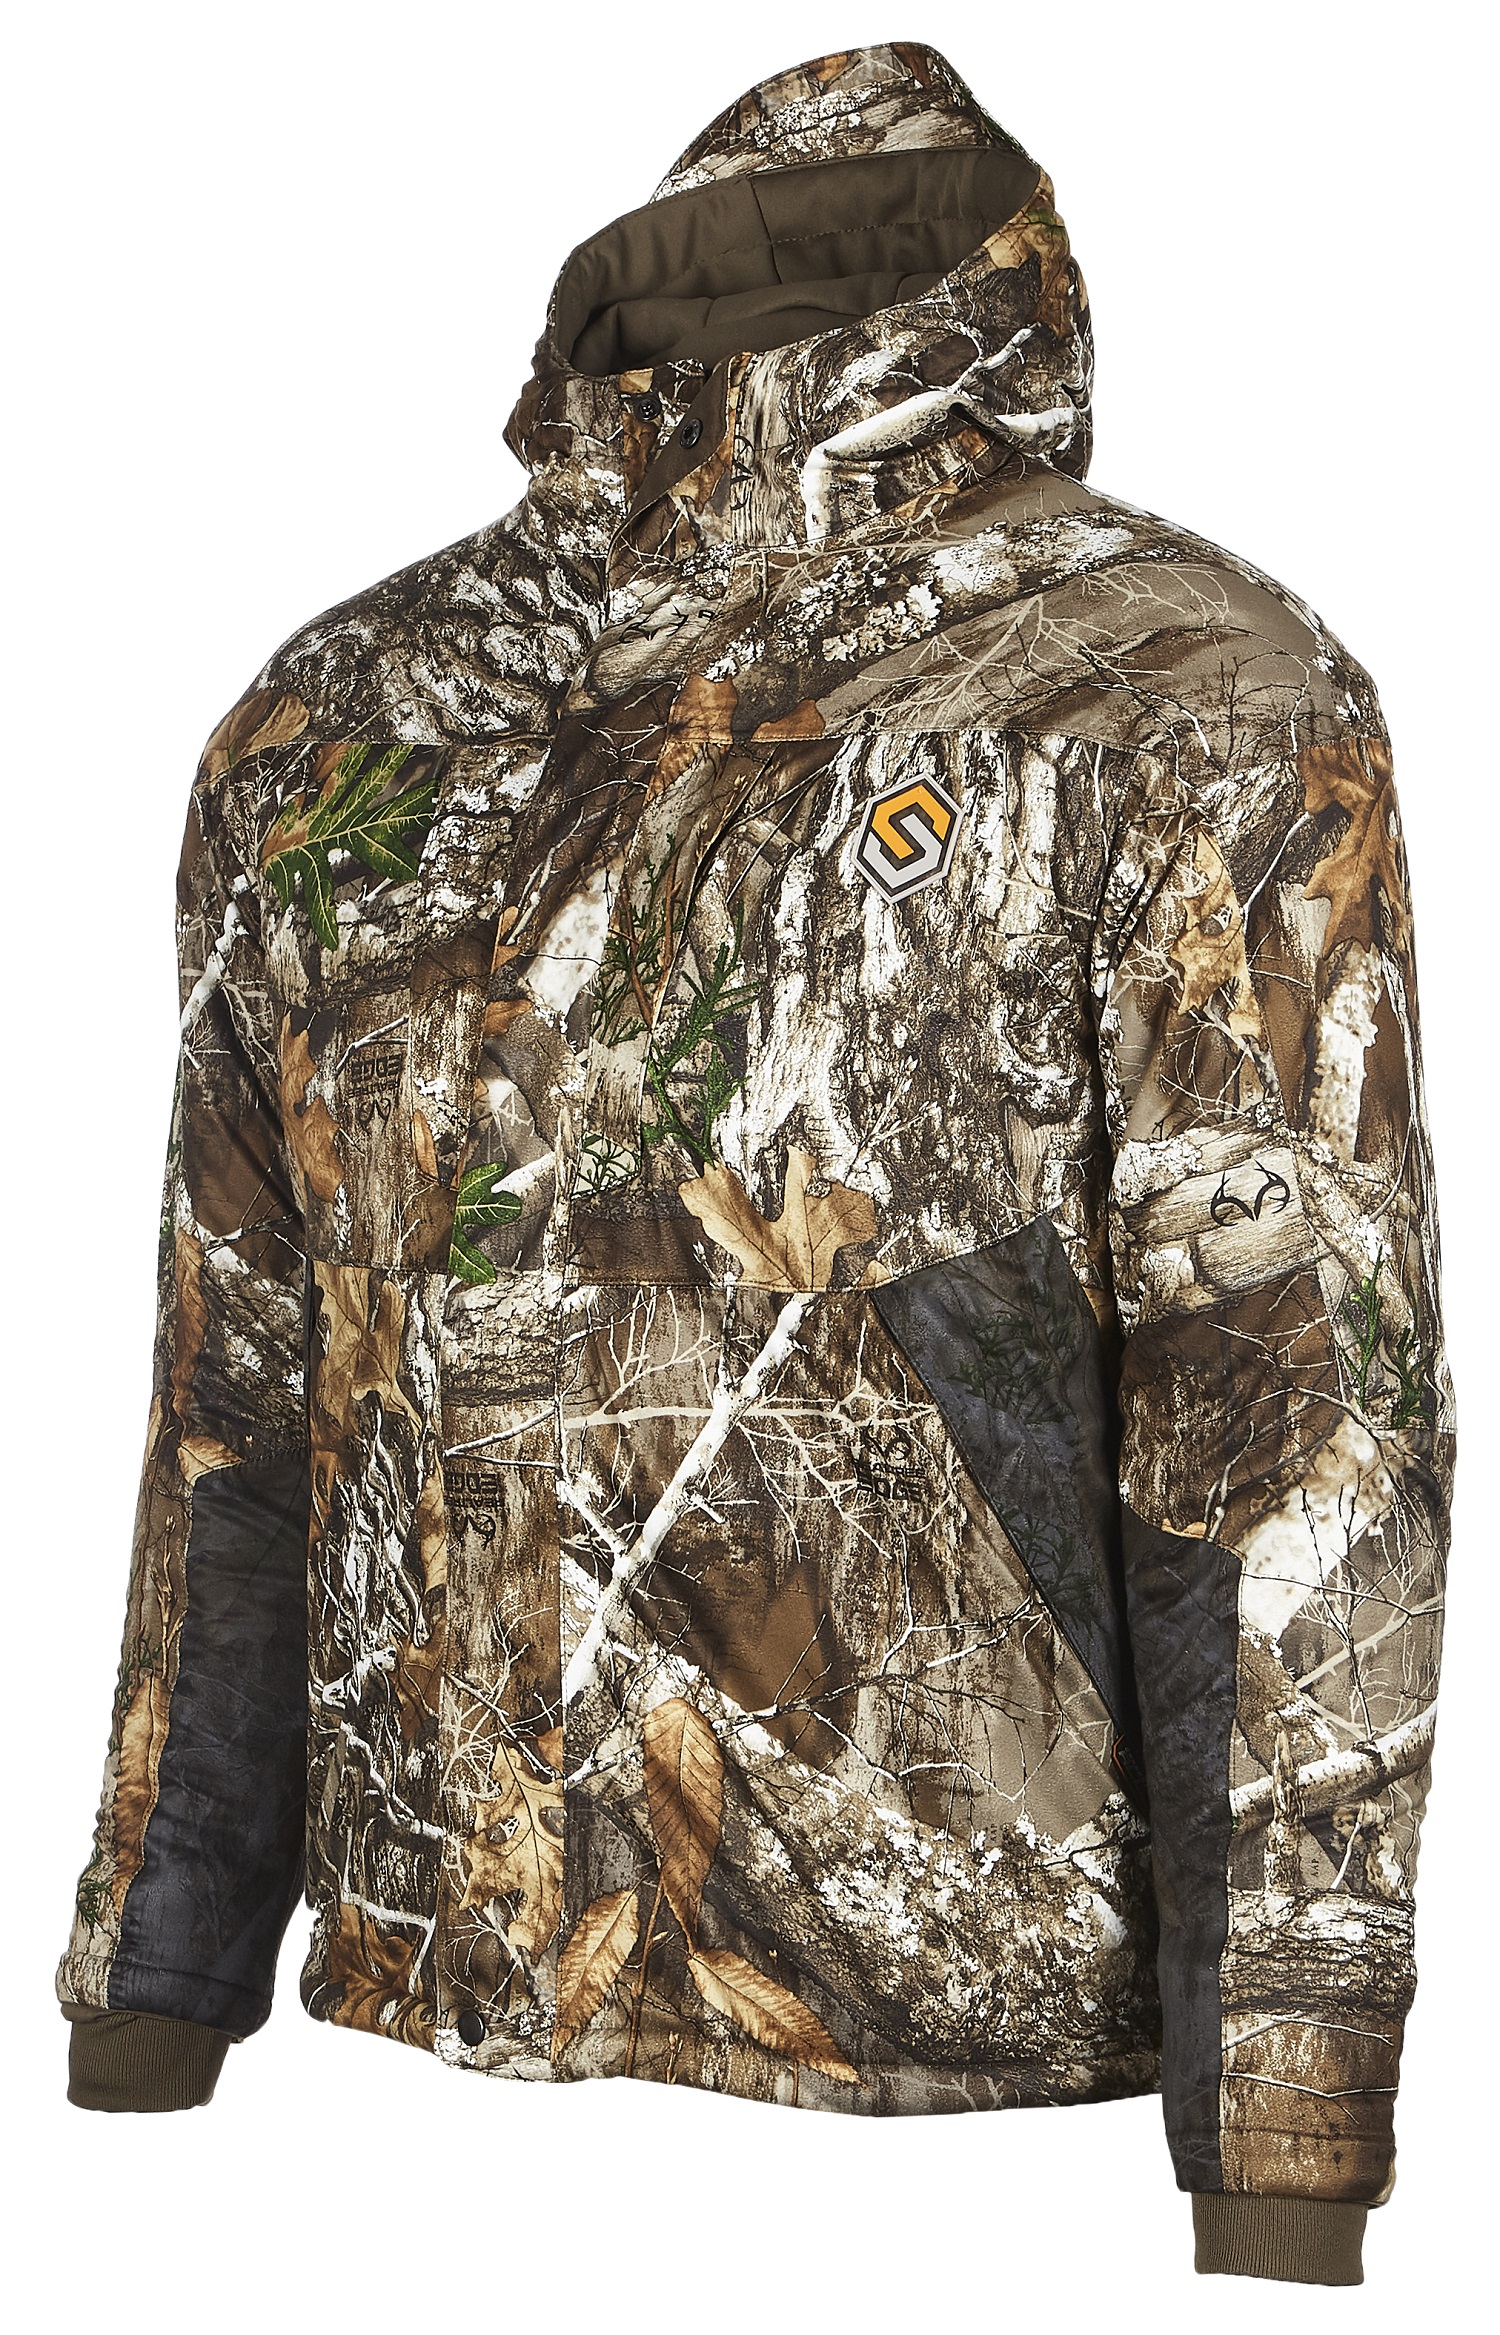 df02538103f4f ScentLok Hydrotherm Waterproof Insulated Jacket - Mens | w/ Free Shipping  and Handling